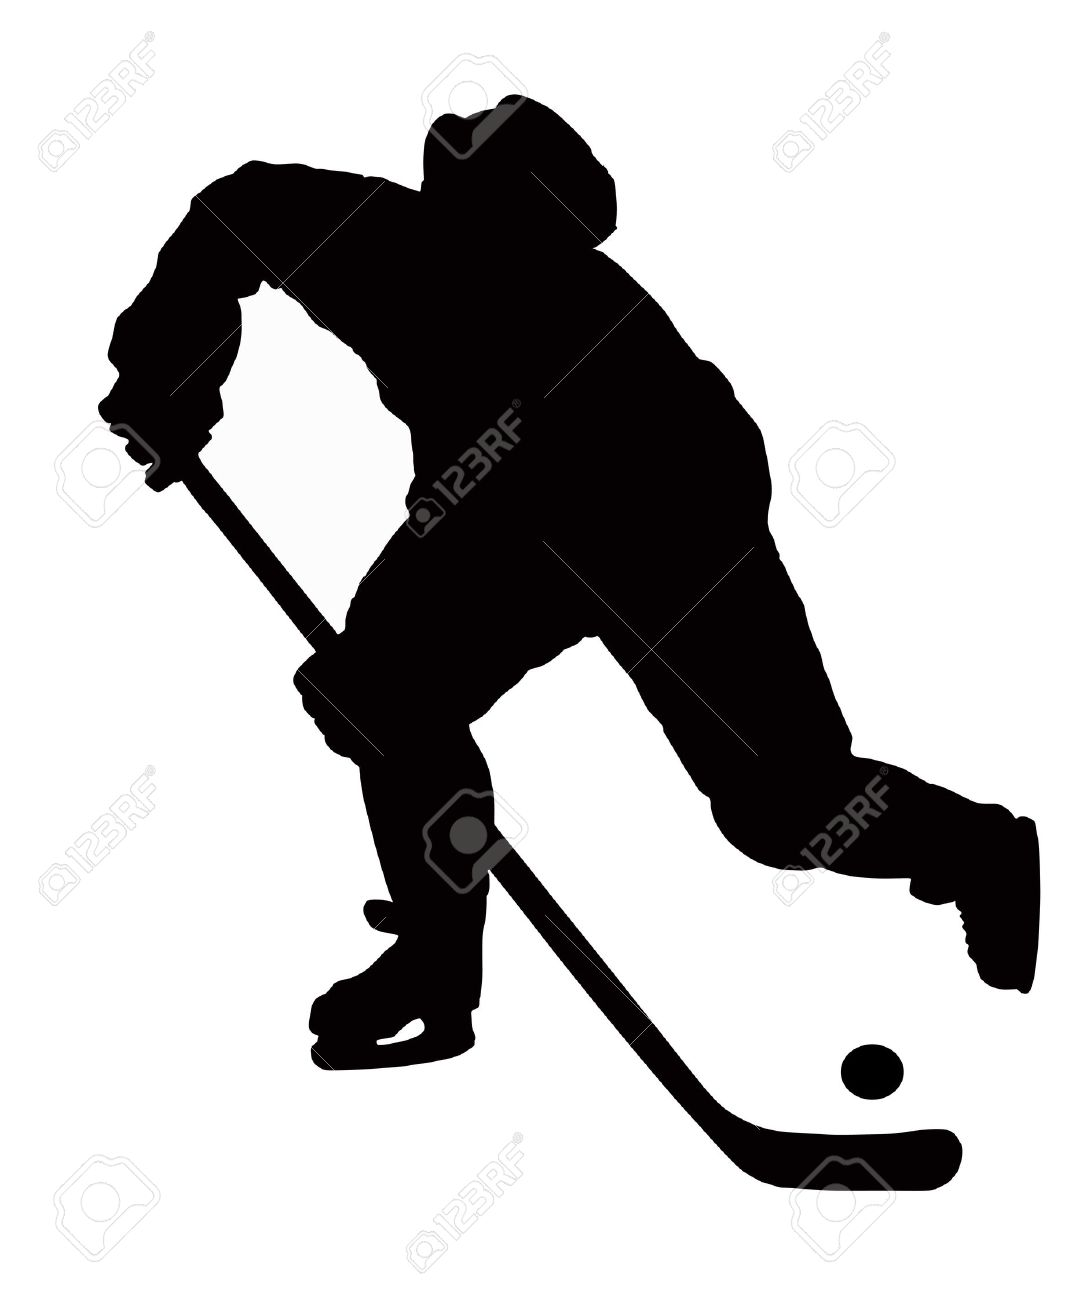 the hockey player plays on white background with puck. Stock Vector - 10472933